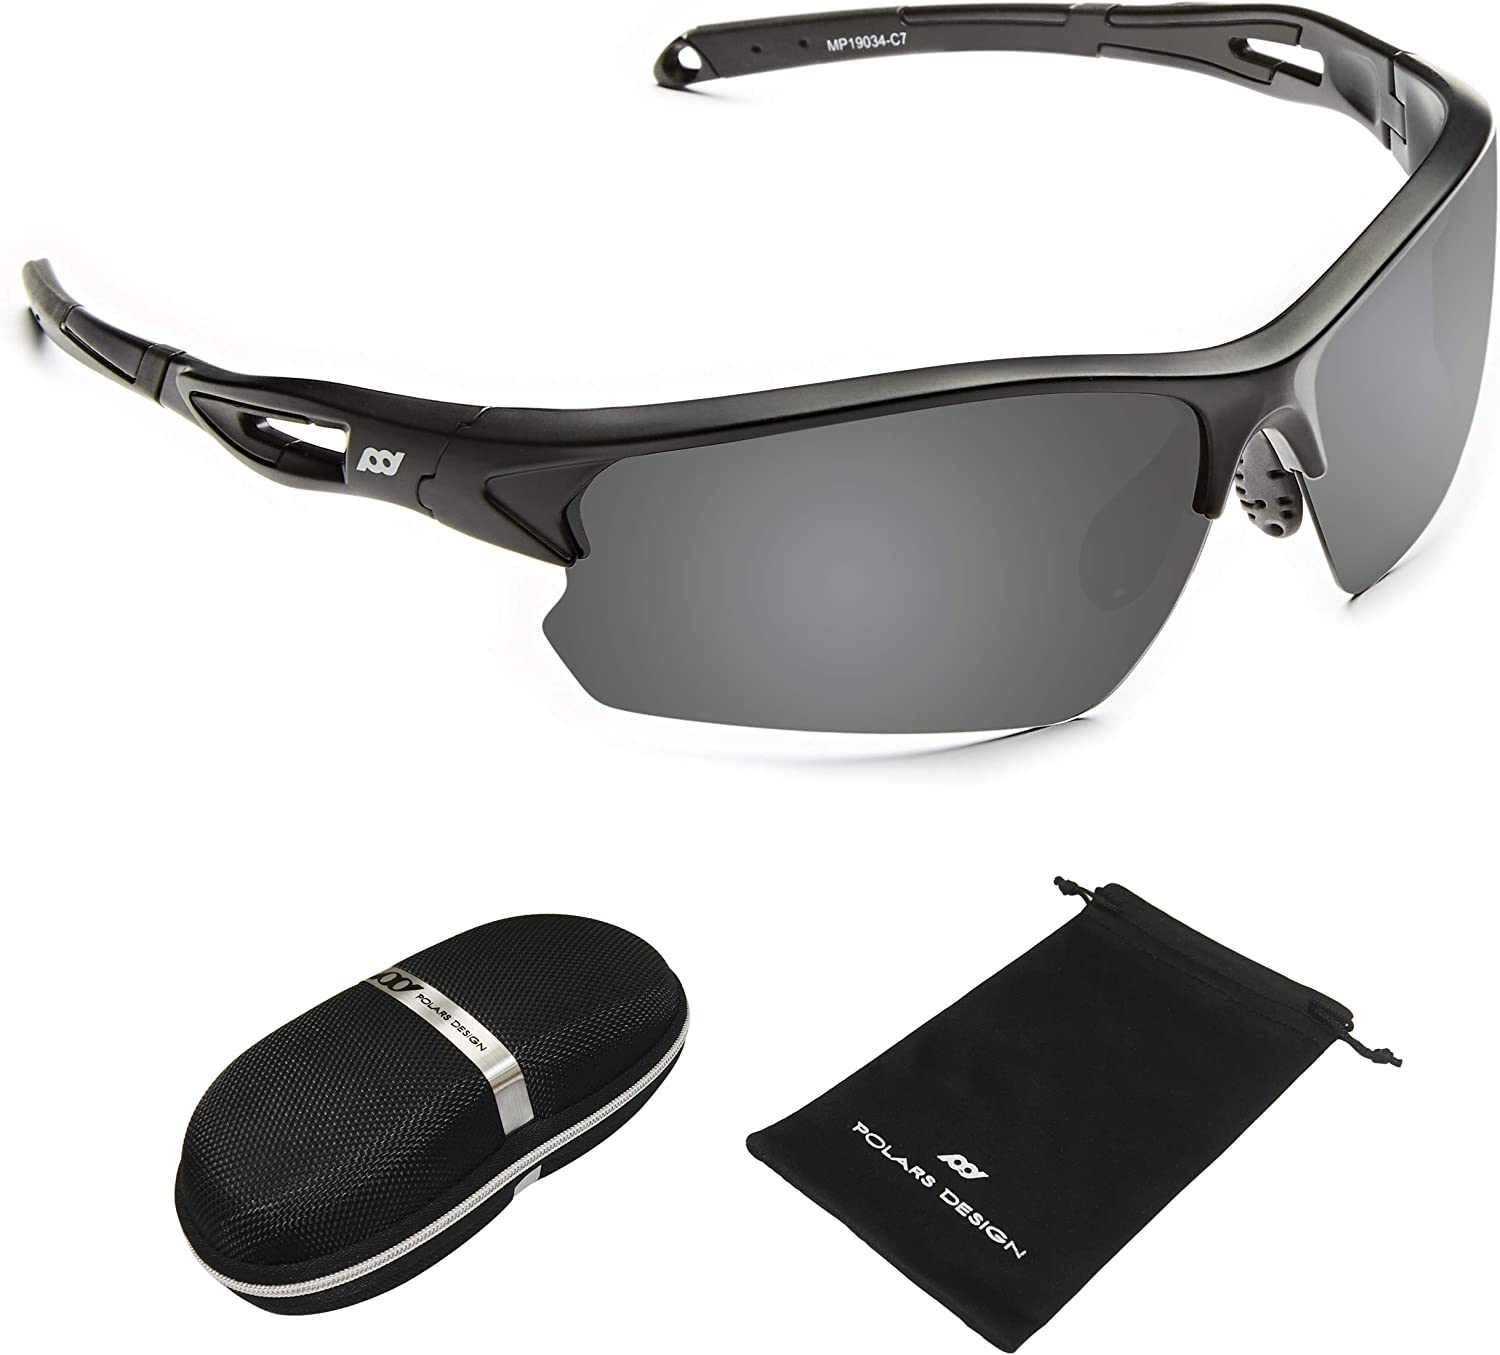 Polarized TR90 Popular overseas Men and Women UV Deluxe Protection for Sunglasses Sports